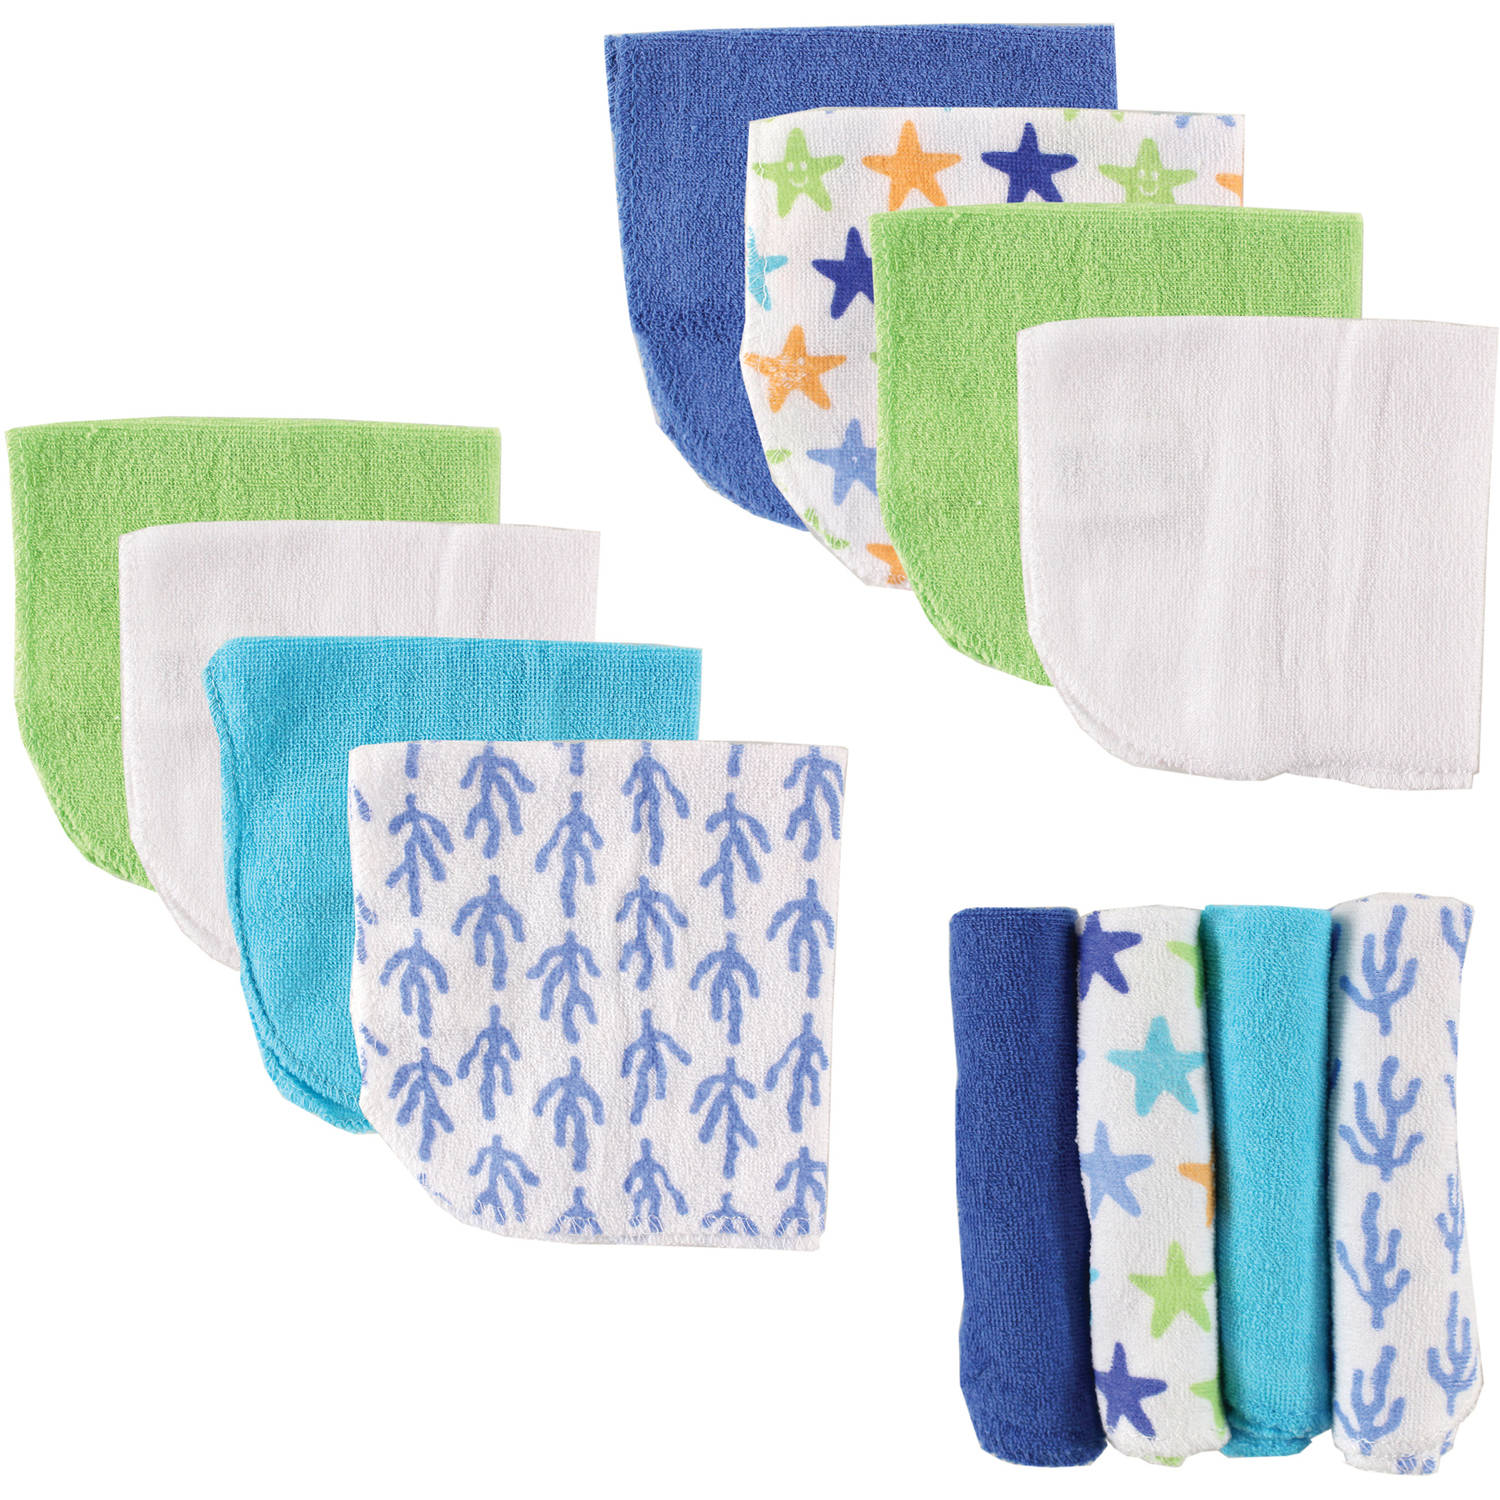 Luvable Friends Washcloths, 12pk, Choose Your Color